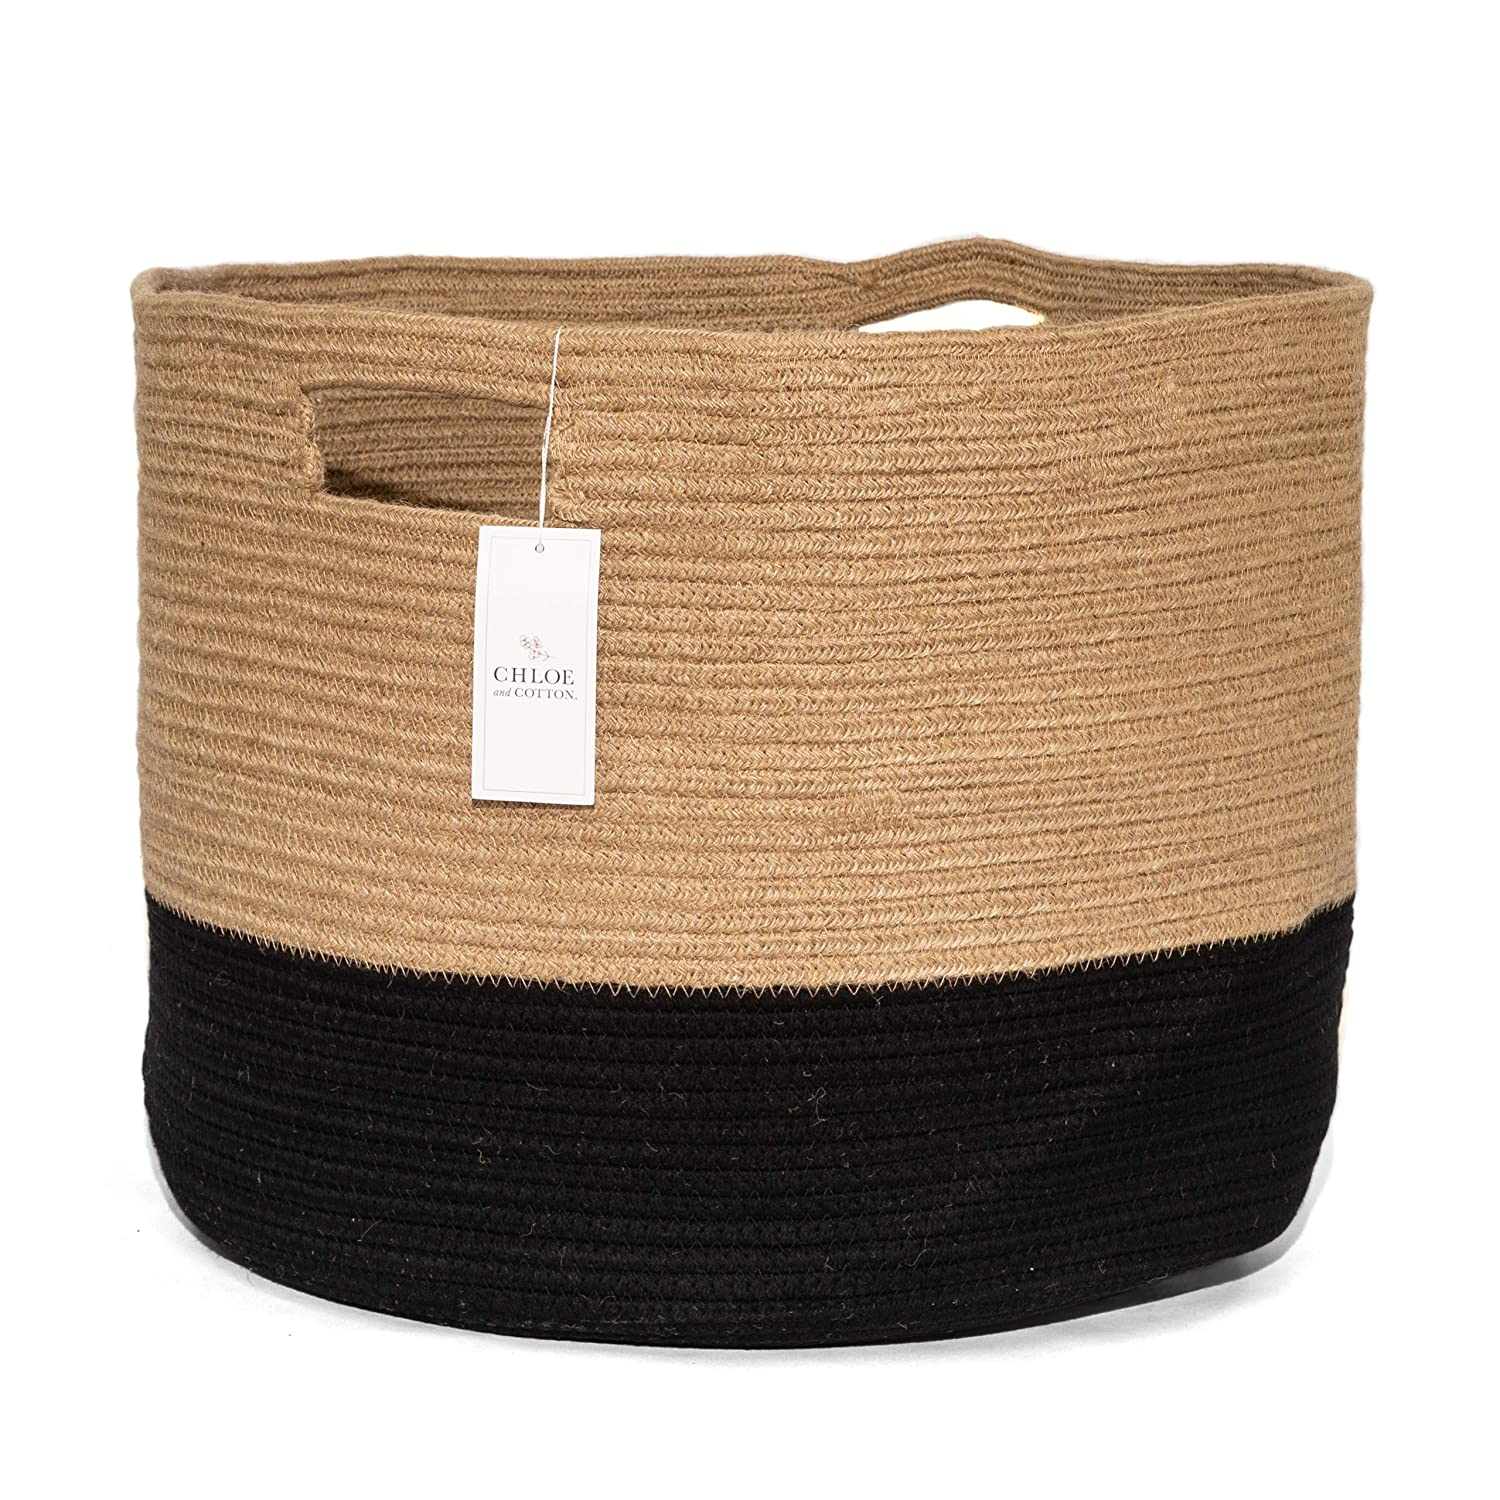 Chloe and Cotton XXXL Extra Large Woven Rope Storage Basket 15 x 21 inch Jute Black Handles | Decorative Laundry Clothes Hamper, Blanket, Towel, Baby Nursery Diaper, Toy Bin Cute Collapsible Organizer